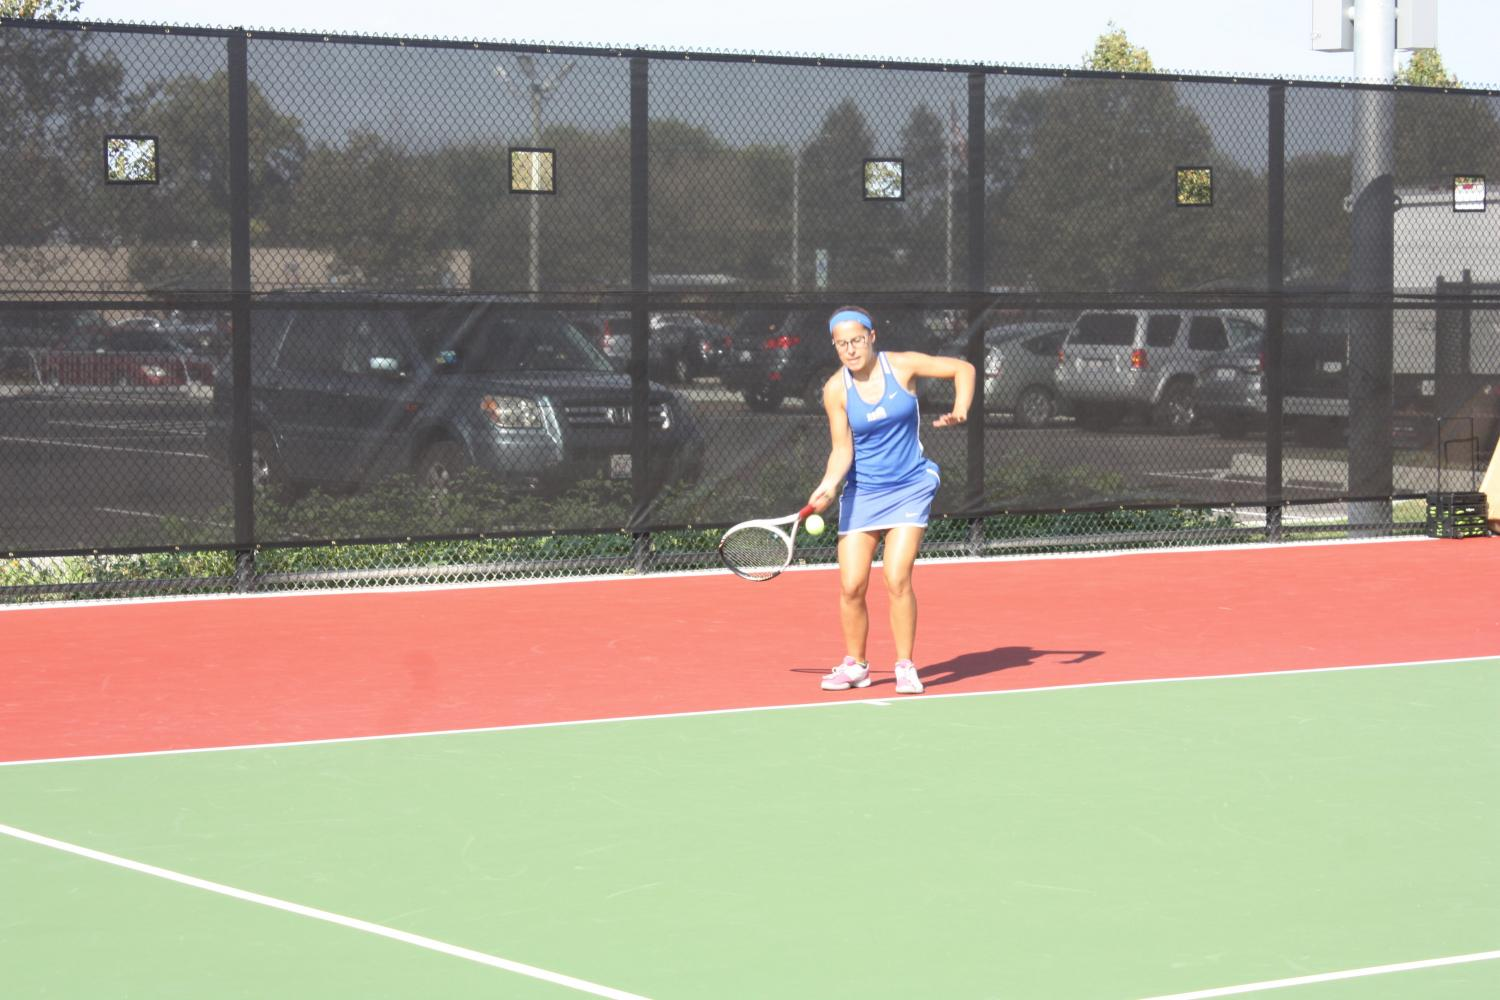 Radka Pribyl Pierdinock practices in new tennis courts